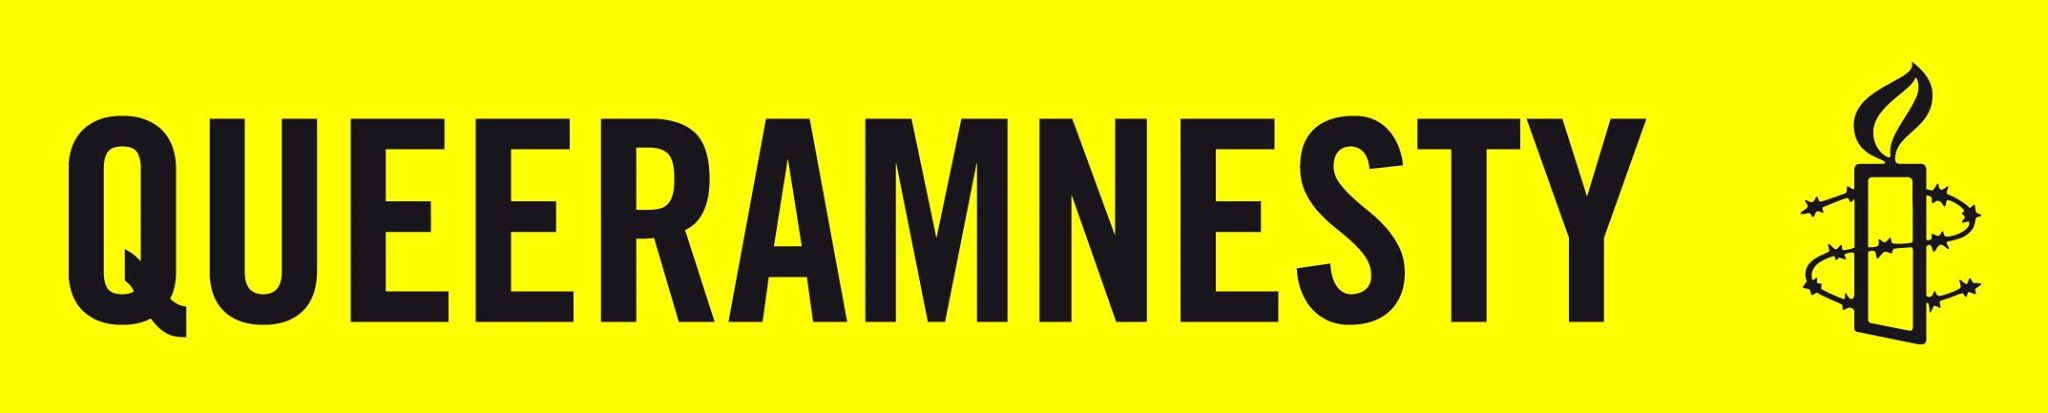 logo_queeramnesty